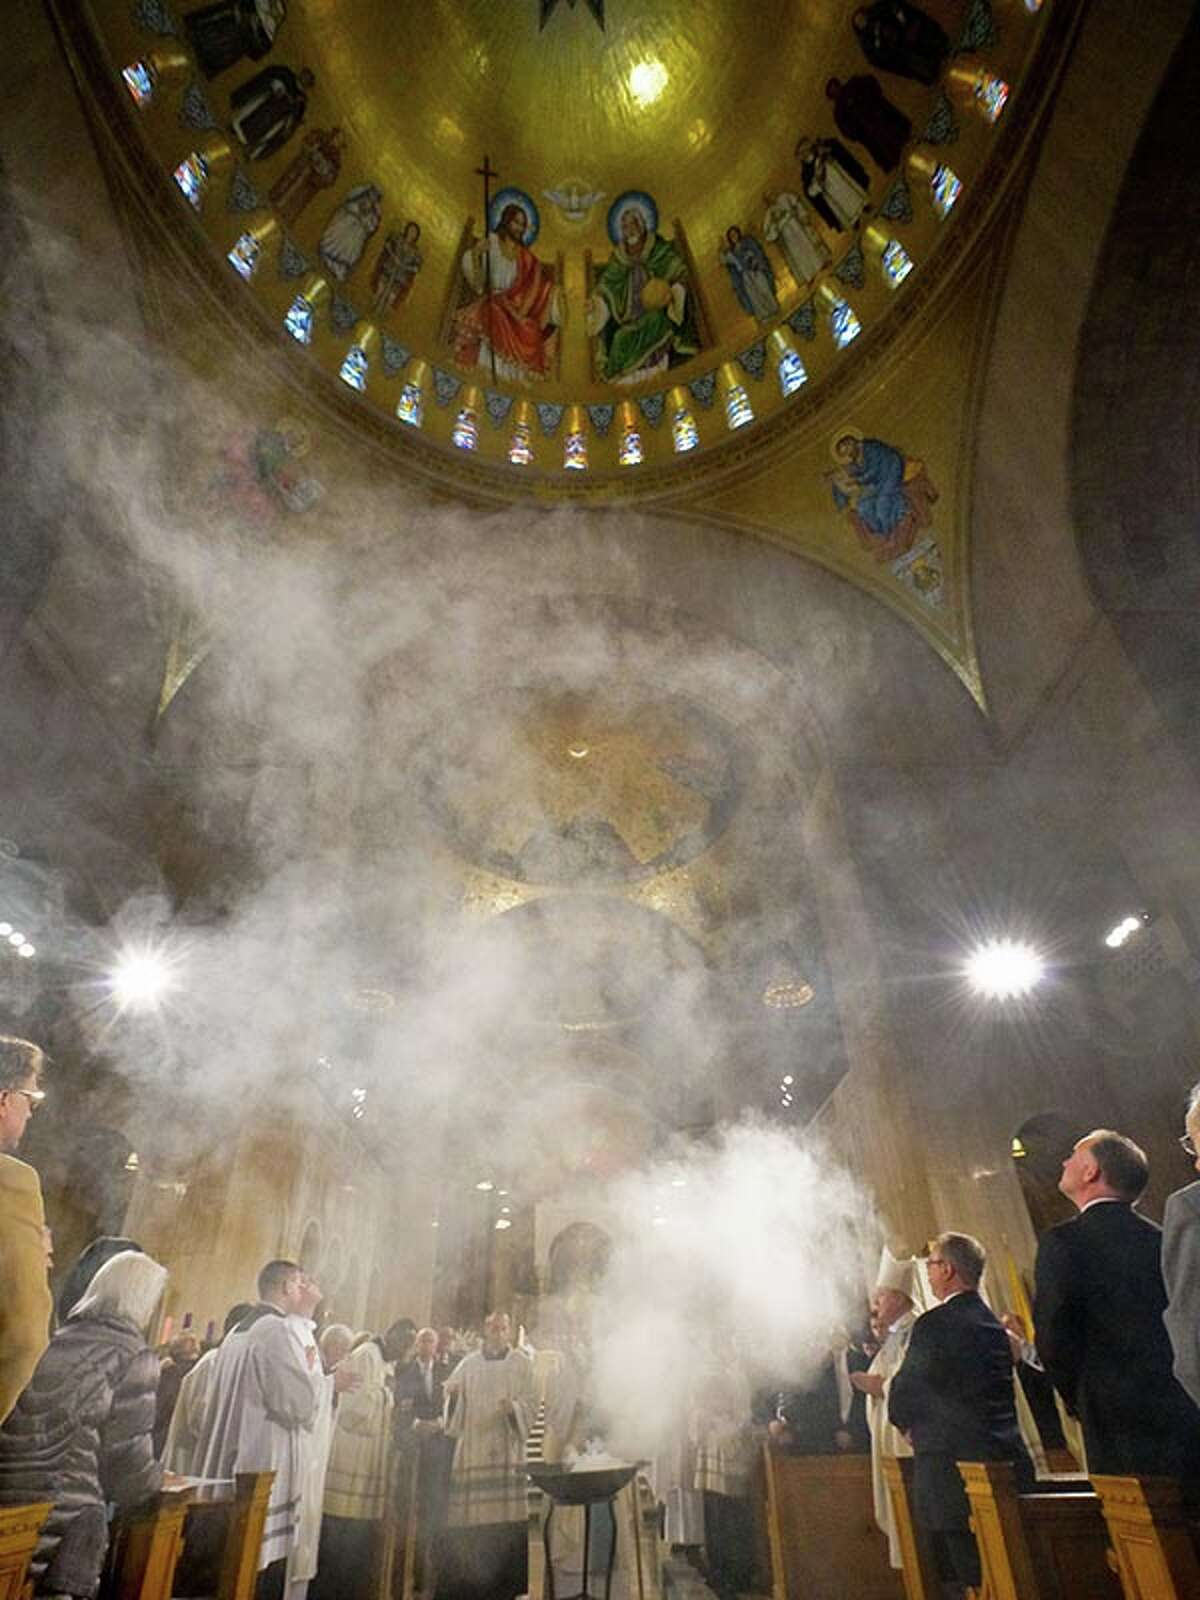 """Incense rises to bless the """"Trinity Dome"""" during the dedication of the Basilica of the National Shrine of the Immaculate Conception in Washington, D.C."""